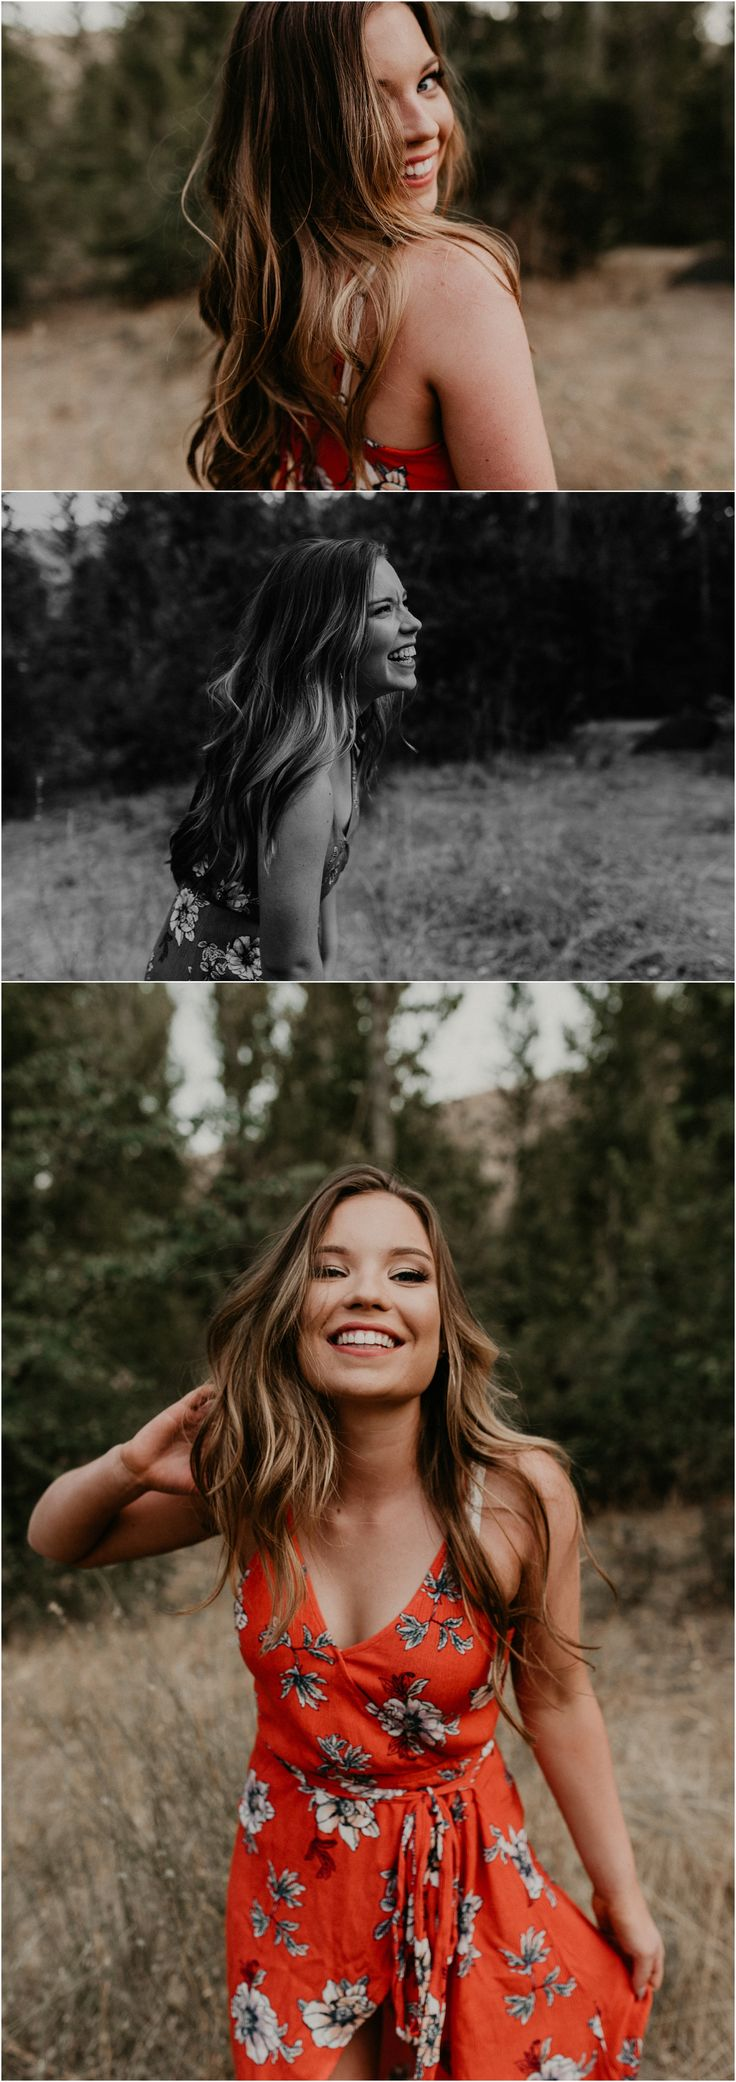 Makayla Madden Photography // Boise Senior Photographer // Fall Senior Pictures // Floral Dress // Dancing // Laughter // Senior Photography // Senior Girl // Posing Ideas // Summer Senior Pictures //